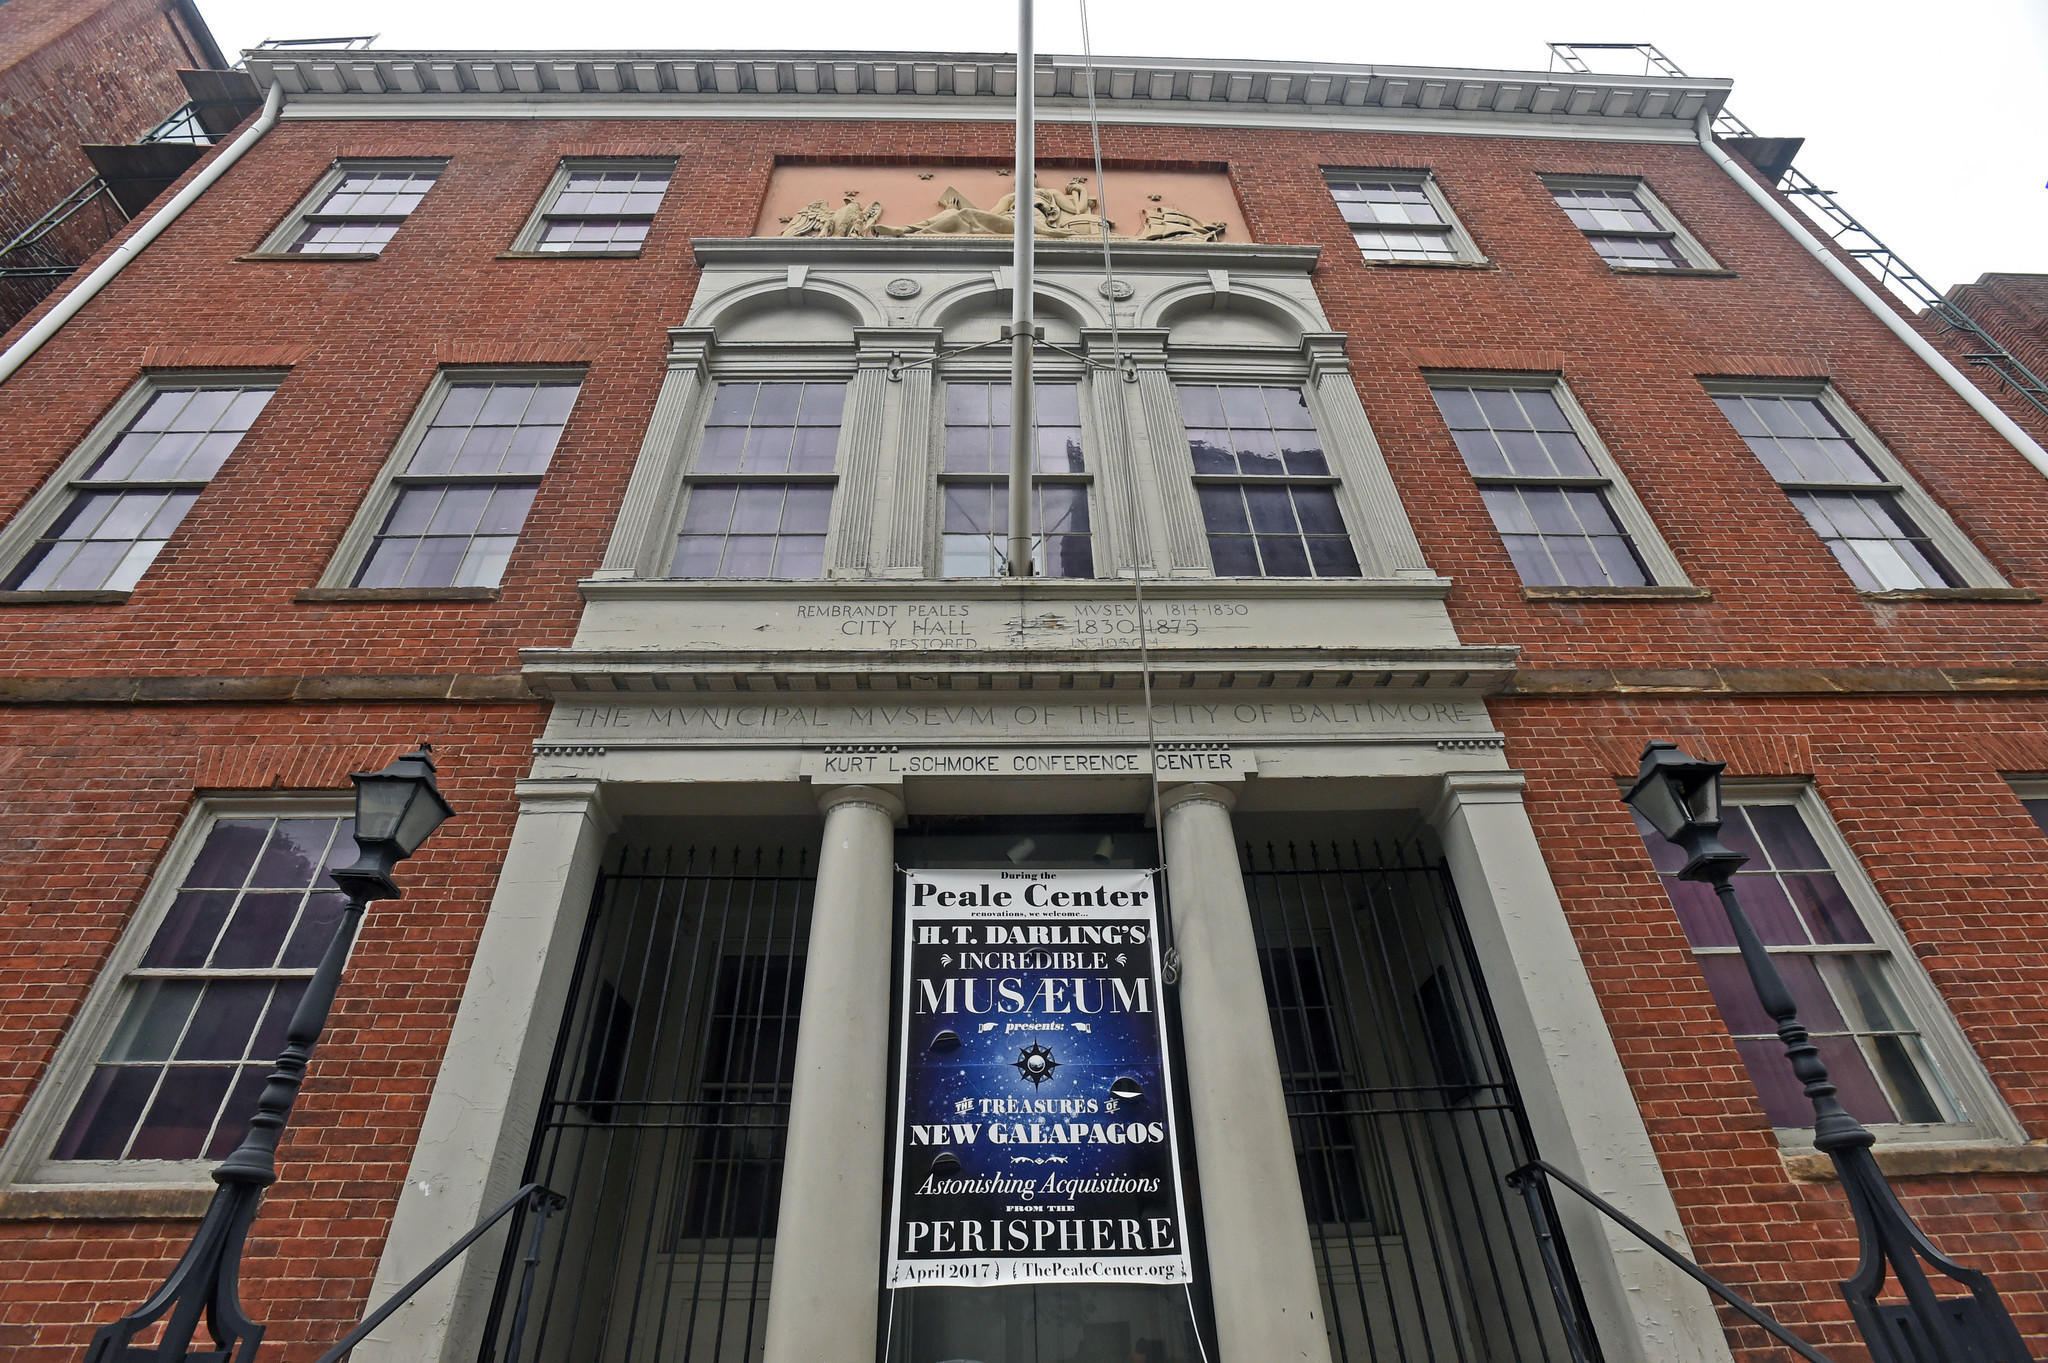 Jacques Kelly Peale Center Shines In A New Light